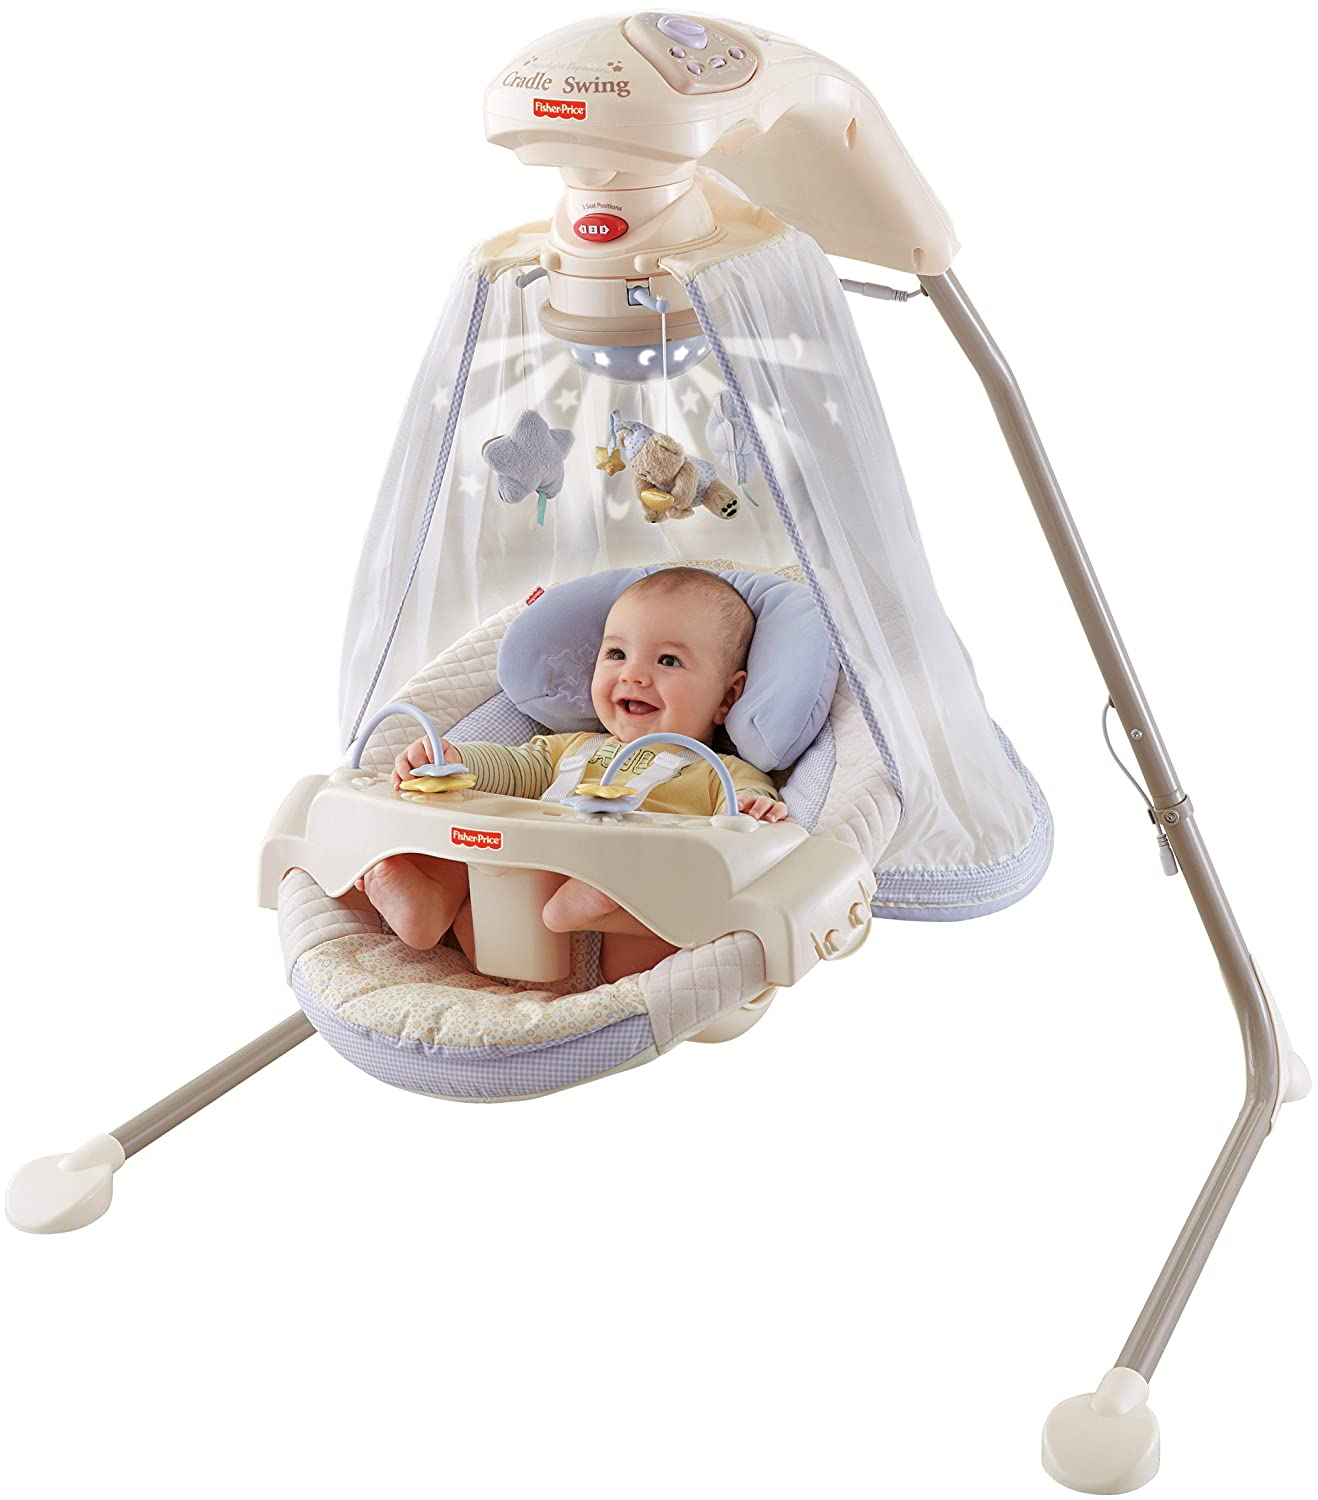 81us0%2BWsyAL. SL1500 The Best Fisher-Price Baby Swings for 2021 Review